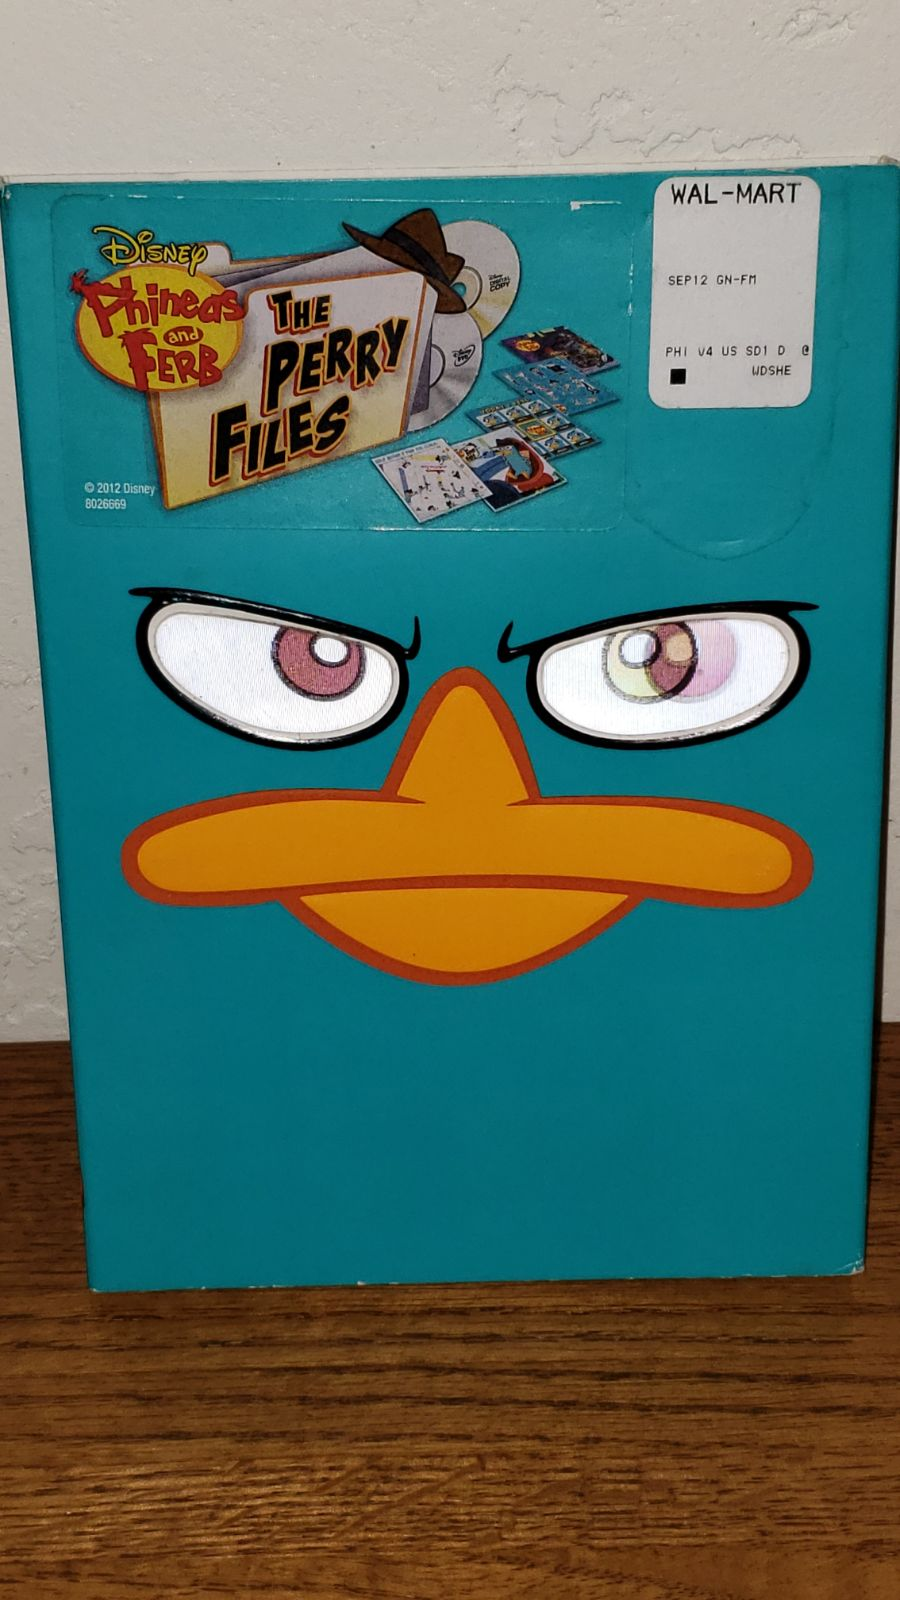 Phineas and Ferb Perry Files